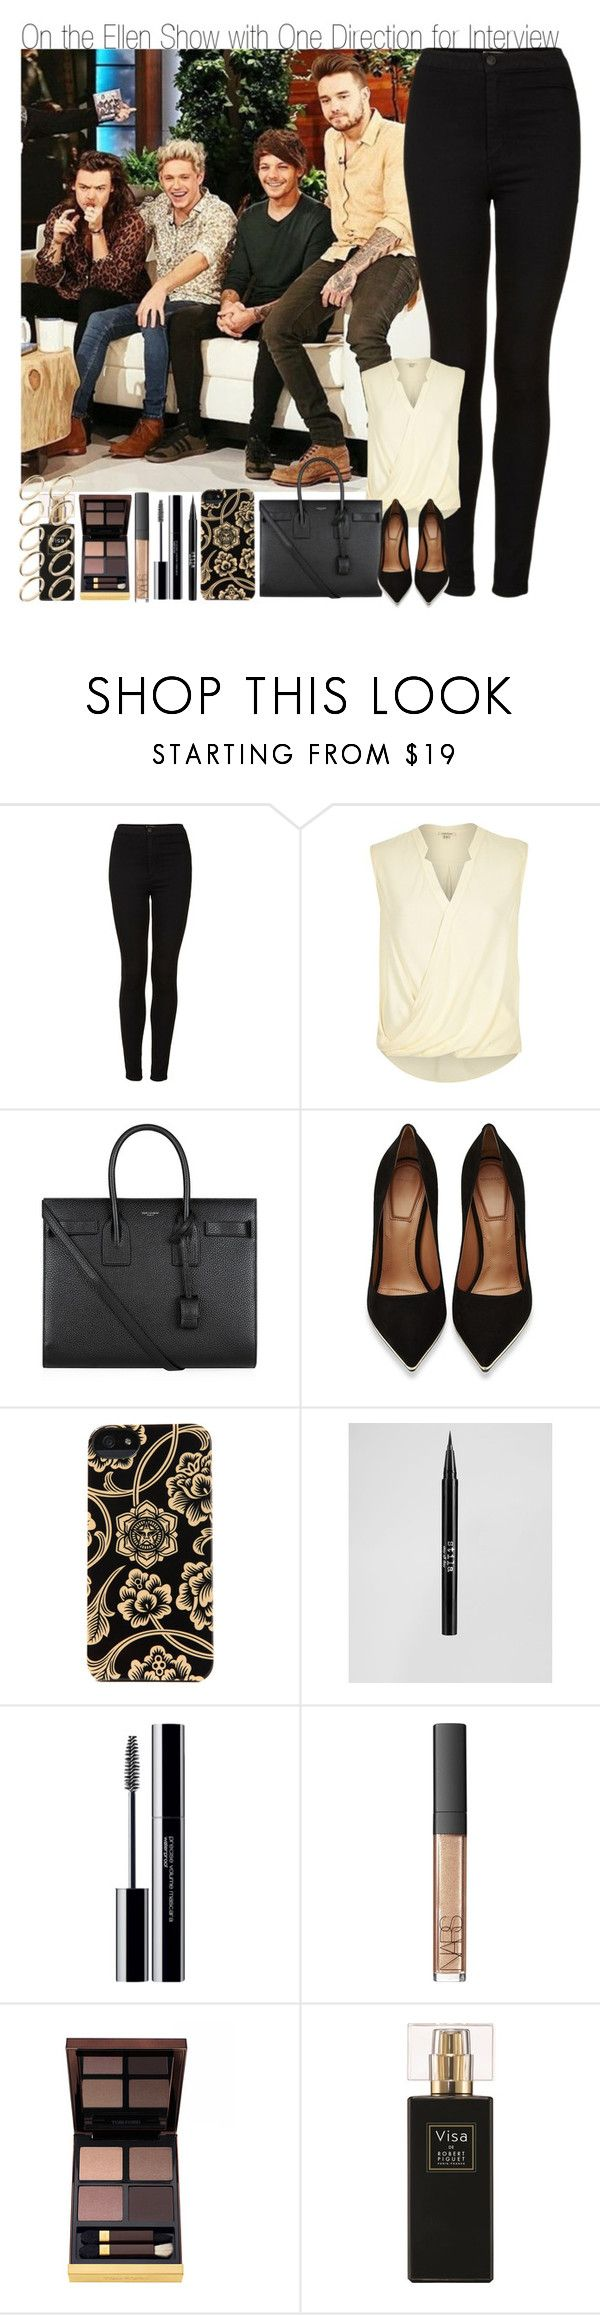 """On the Ellen Show with One Direction"" by elise-22 ❤ liked on Polyvore featuring Topshop, River Island, Yves Saint Laurent, Givenchy, Incase, Stila, shu uemura, NARS Cosmetics, Tom Ford and Robert Piguet"